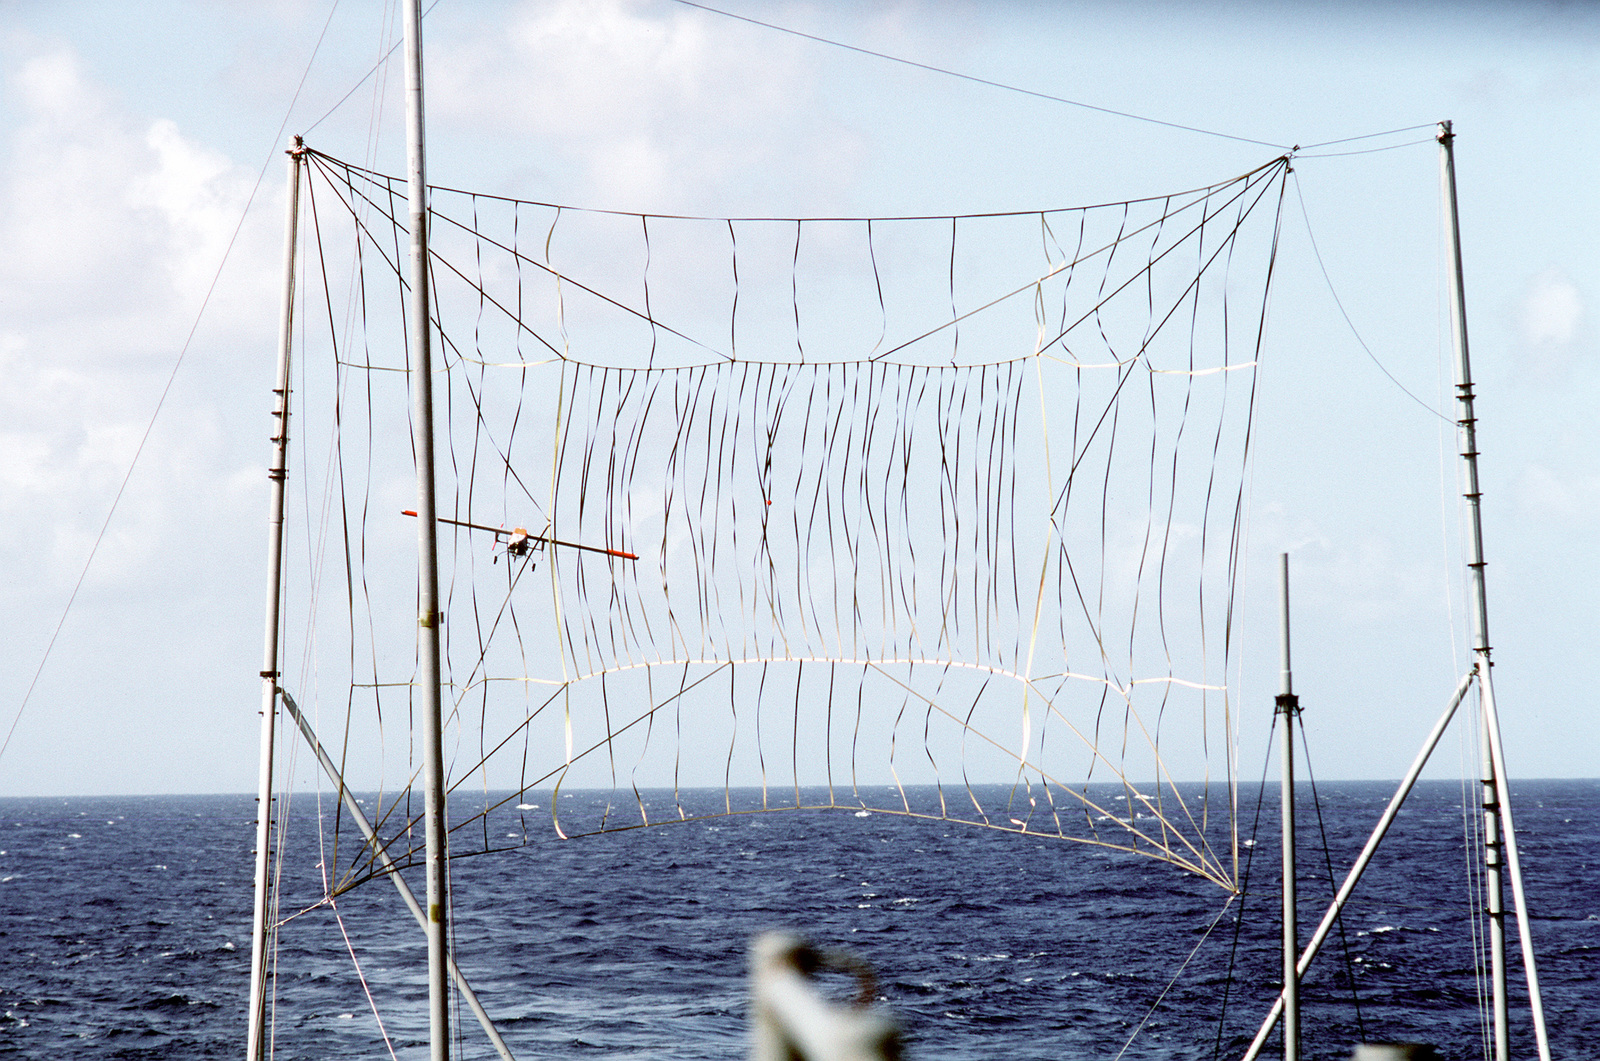 A Pioneer I remotely piloted vehicle (PV) approaches a recovery net erected on the stern of the battleship USS IOWA (BB-61). The RPV, which carries a stabilized television camera and a laser designator, is being tested aboard the IOWA as a basic gunfire support system with over-the-horizon targeting and reconnaissance capabilities. The system may be operated out to a range of 110 miles from the battleship surface group and has endurance of eight hours